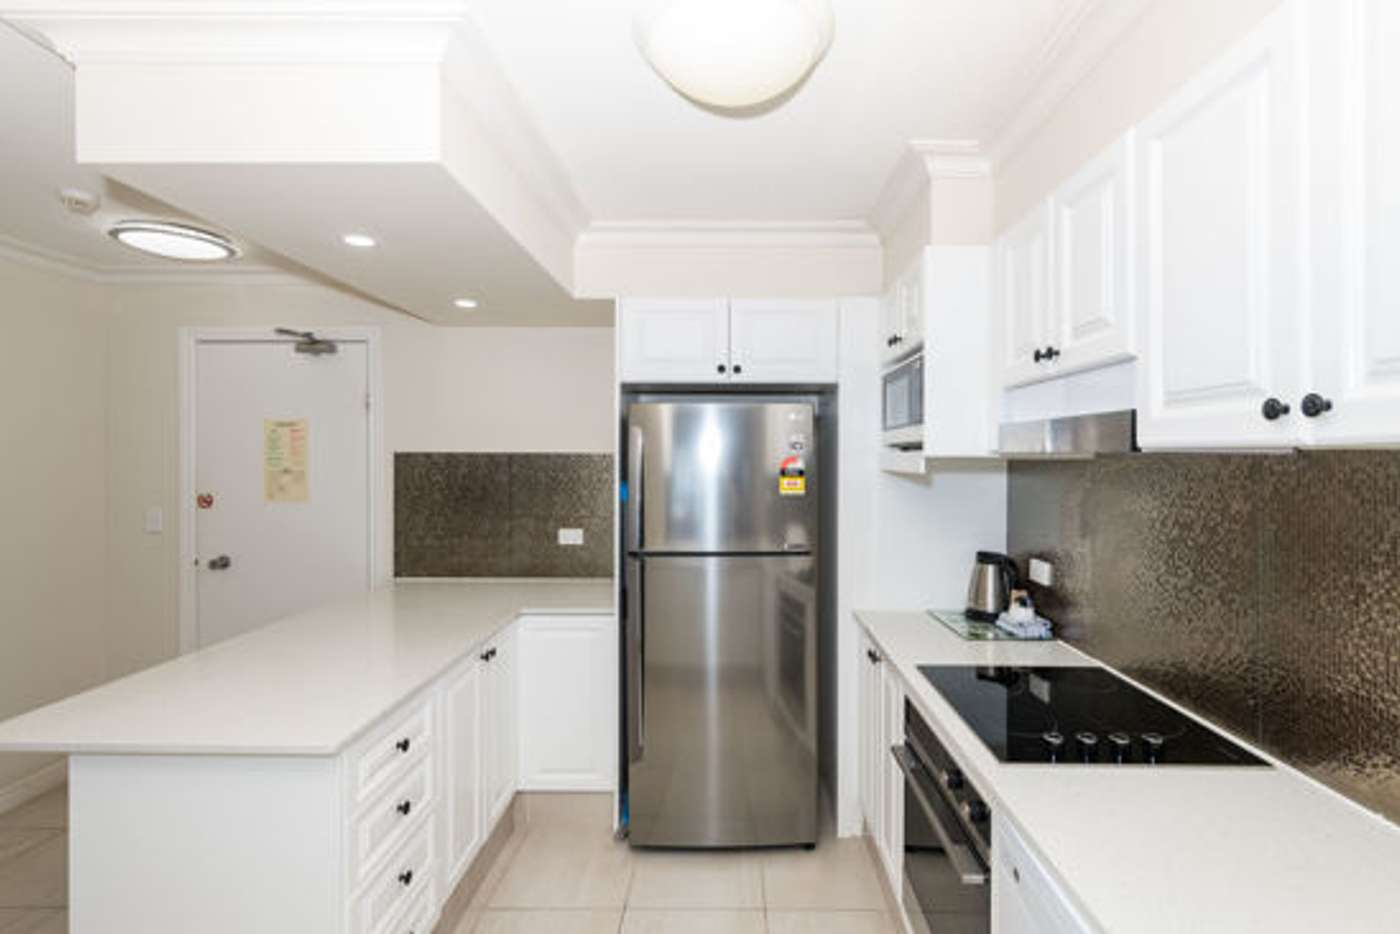 Seventh view of Homely house listing, 43/ 126 Old Burleigh Road, Broadbeach QLD 4218